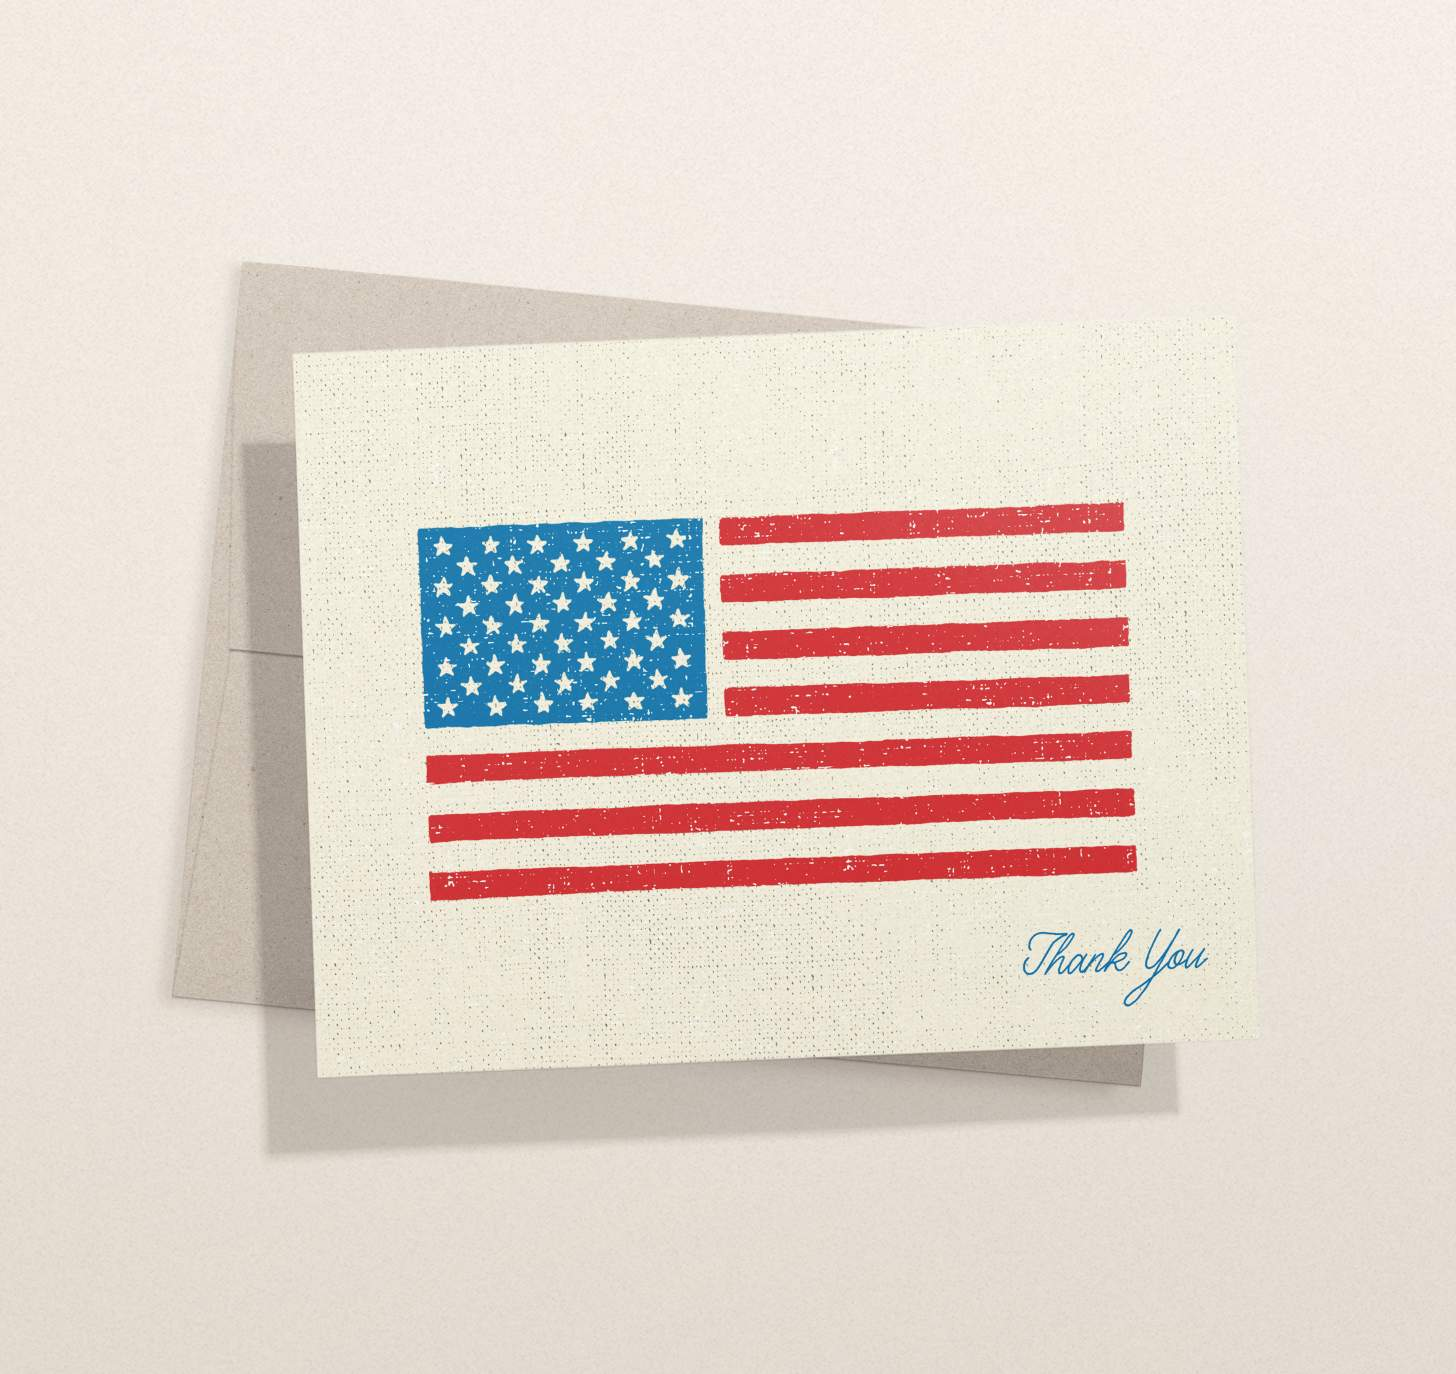 American flag thank you card with envelope